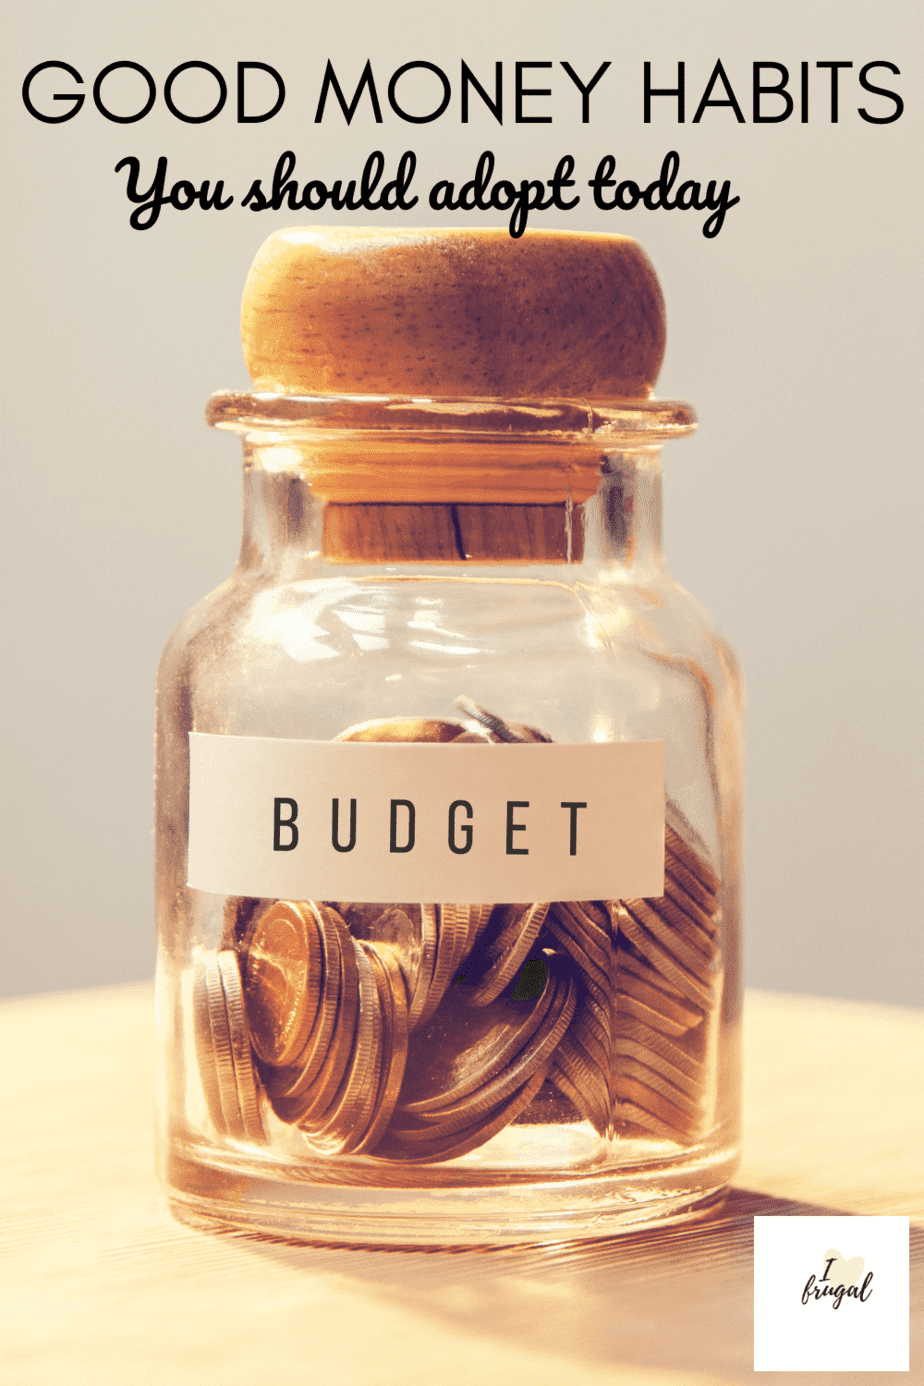 Good Money Habits You Should Adopt Today (1)